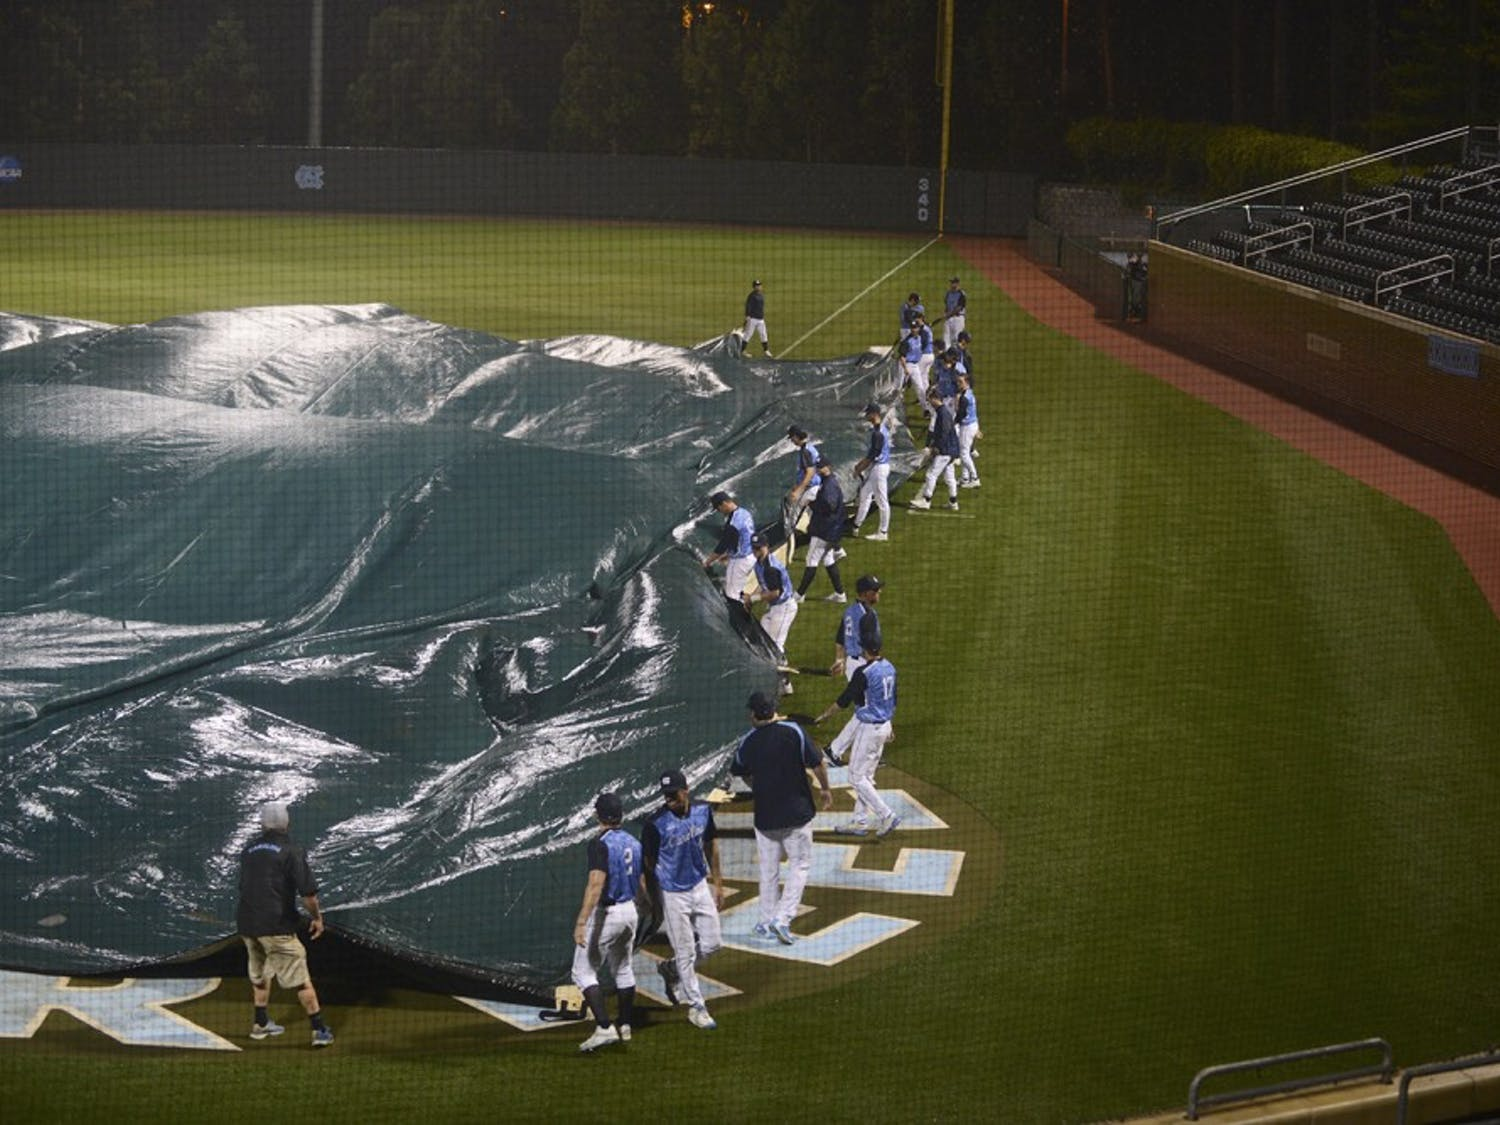 Rain delay in the top of the 6th inning.